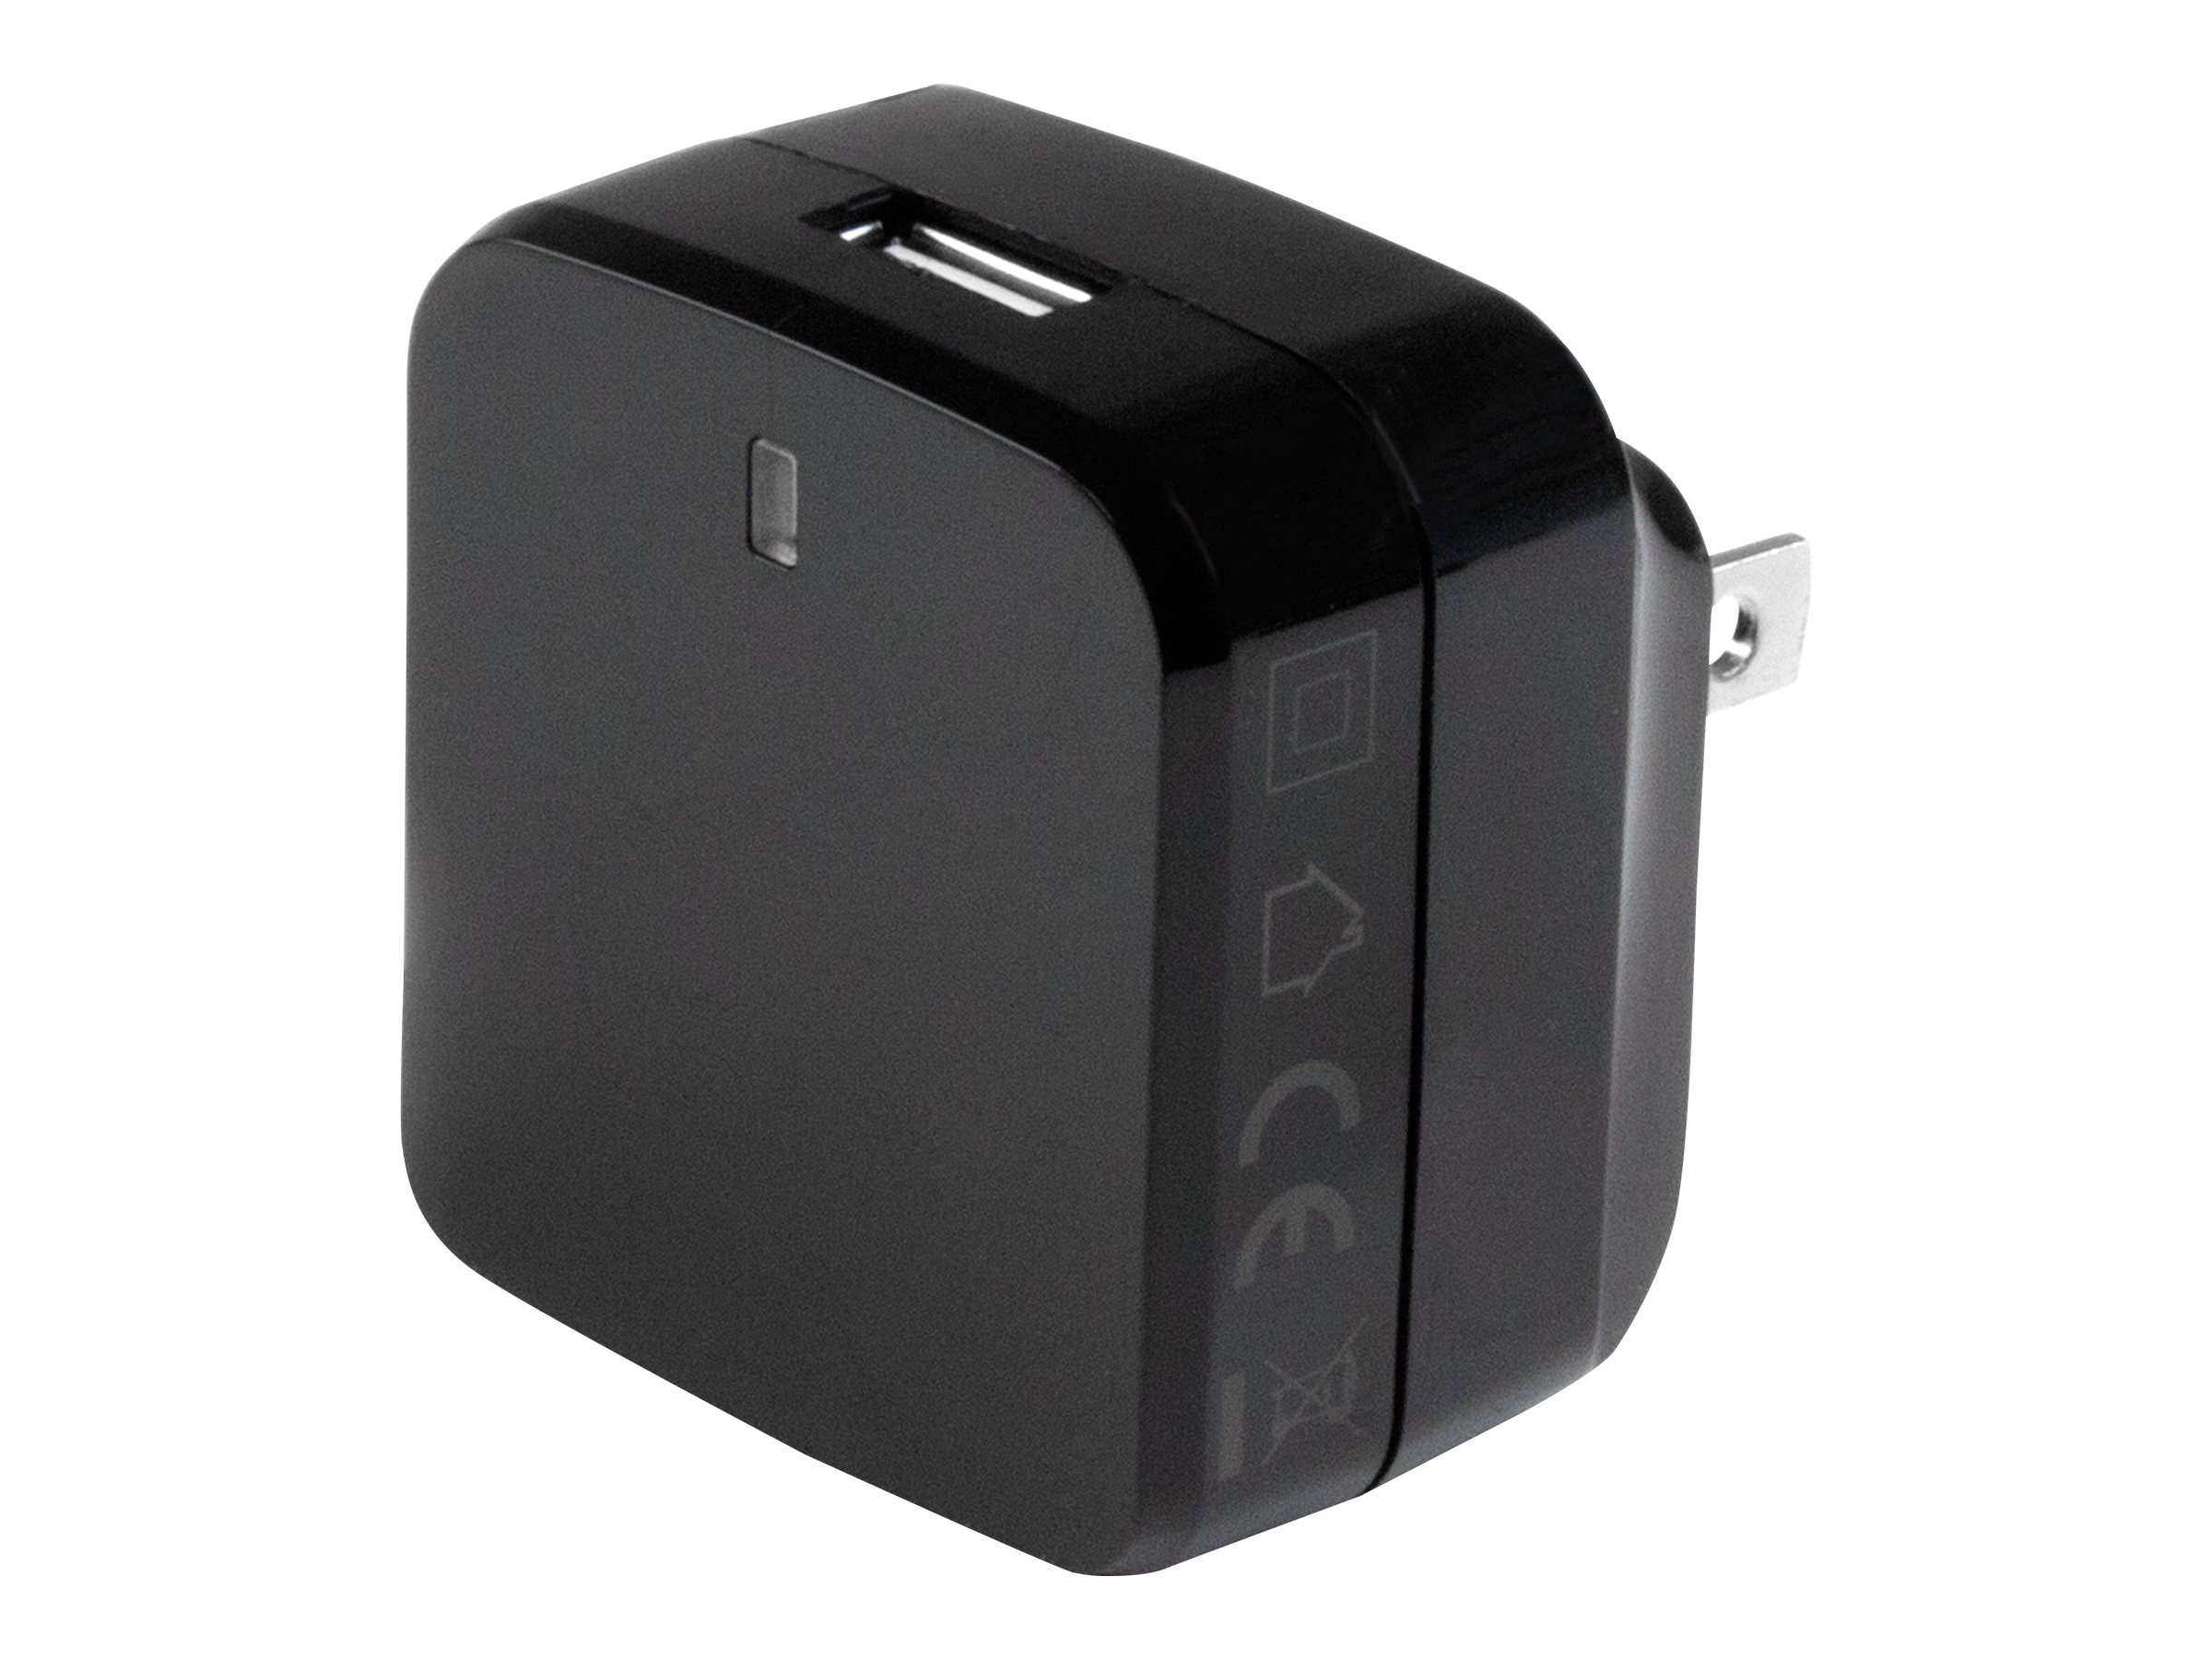 StarTech.com Black USB Wall Charger - Quick Charge 2.0 - 110V/220V Charger power adapter - USB